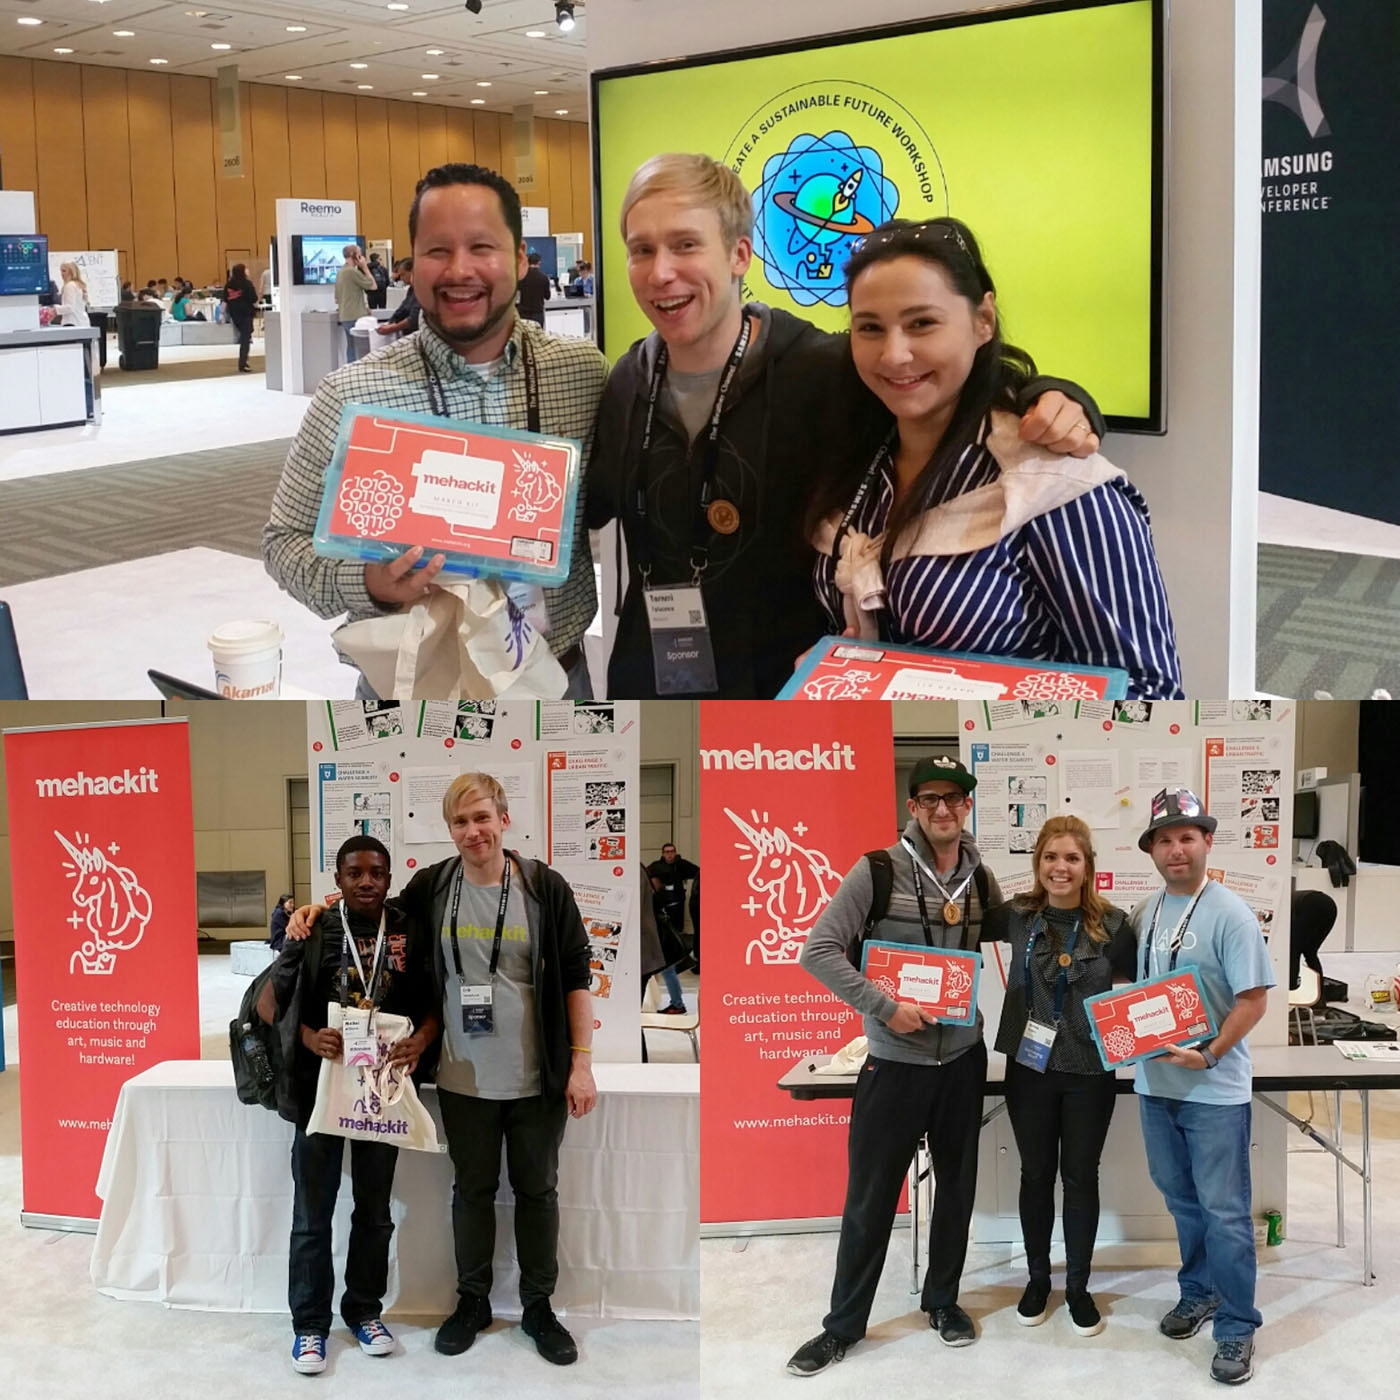 Each day teams behind the best prototypes won Mehackit Maker kits!